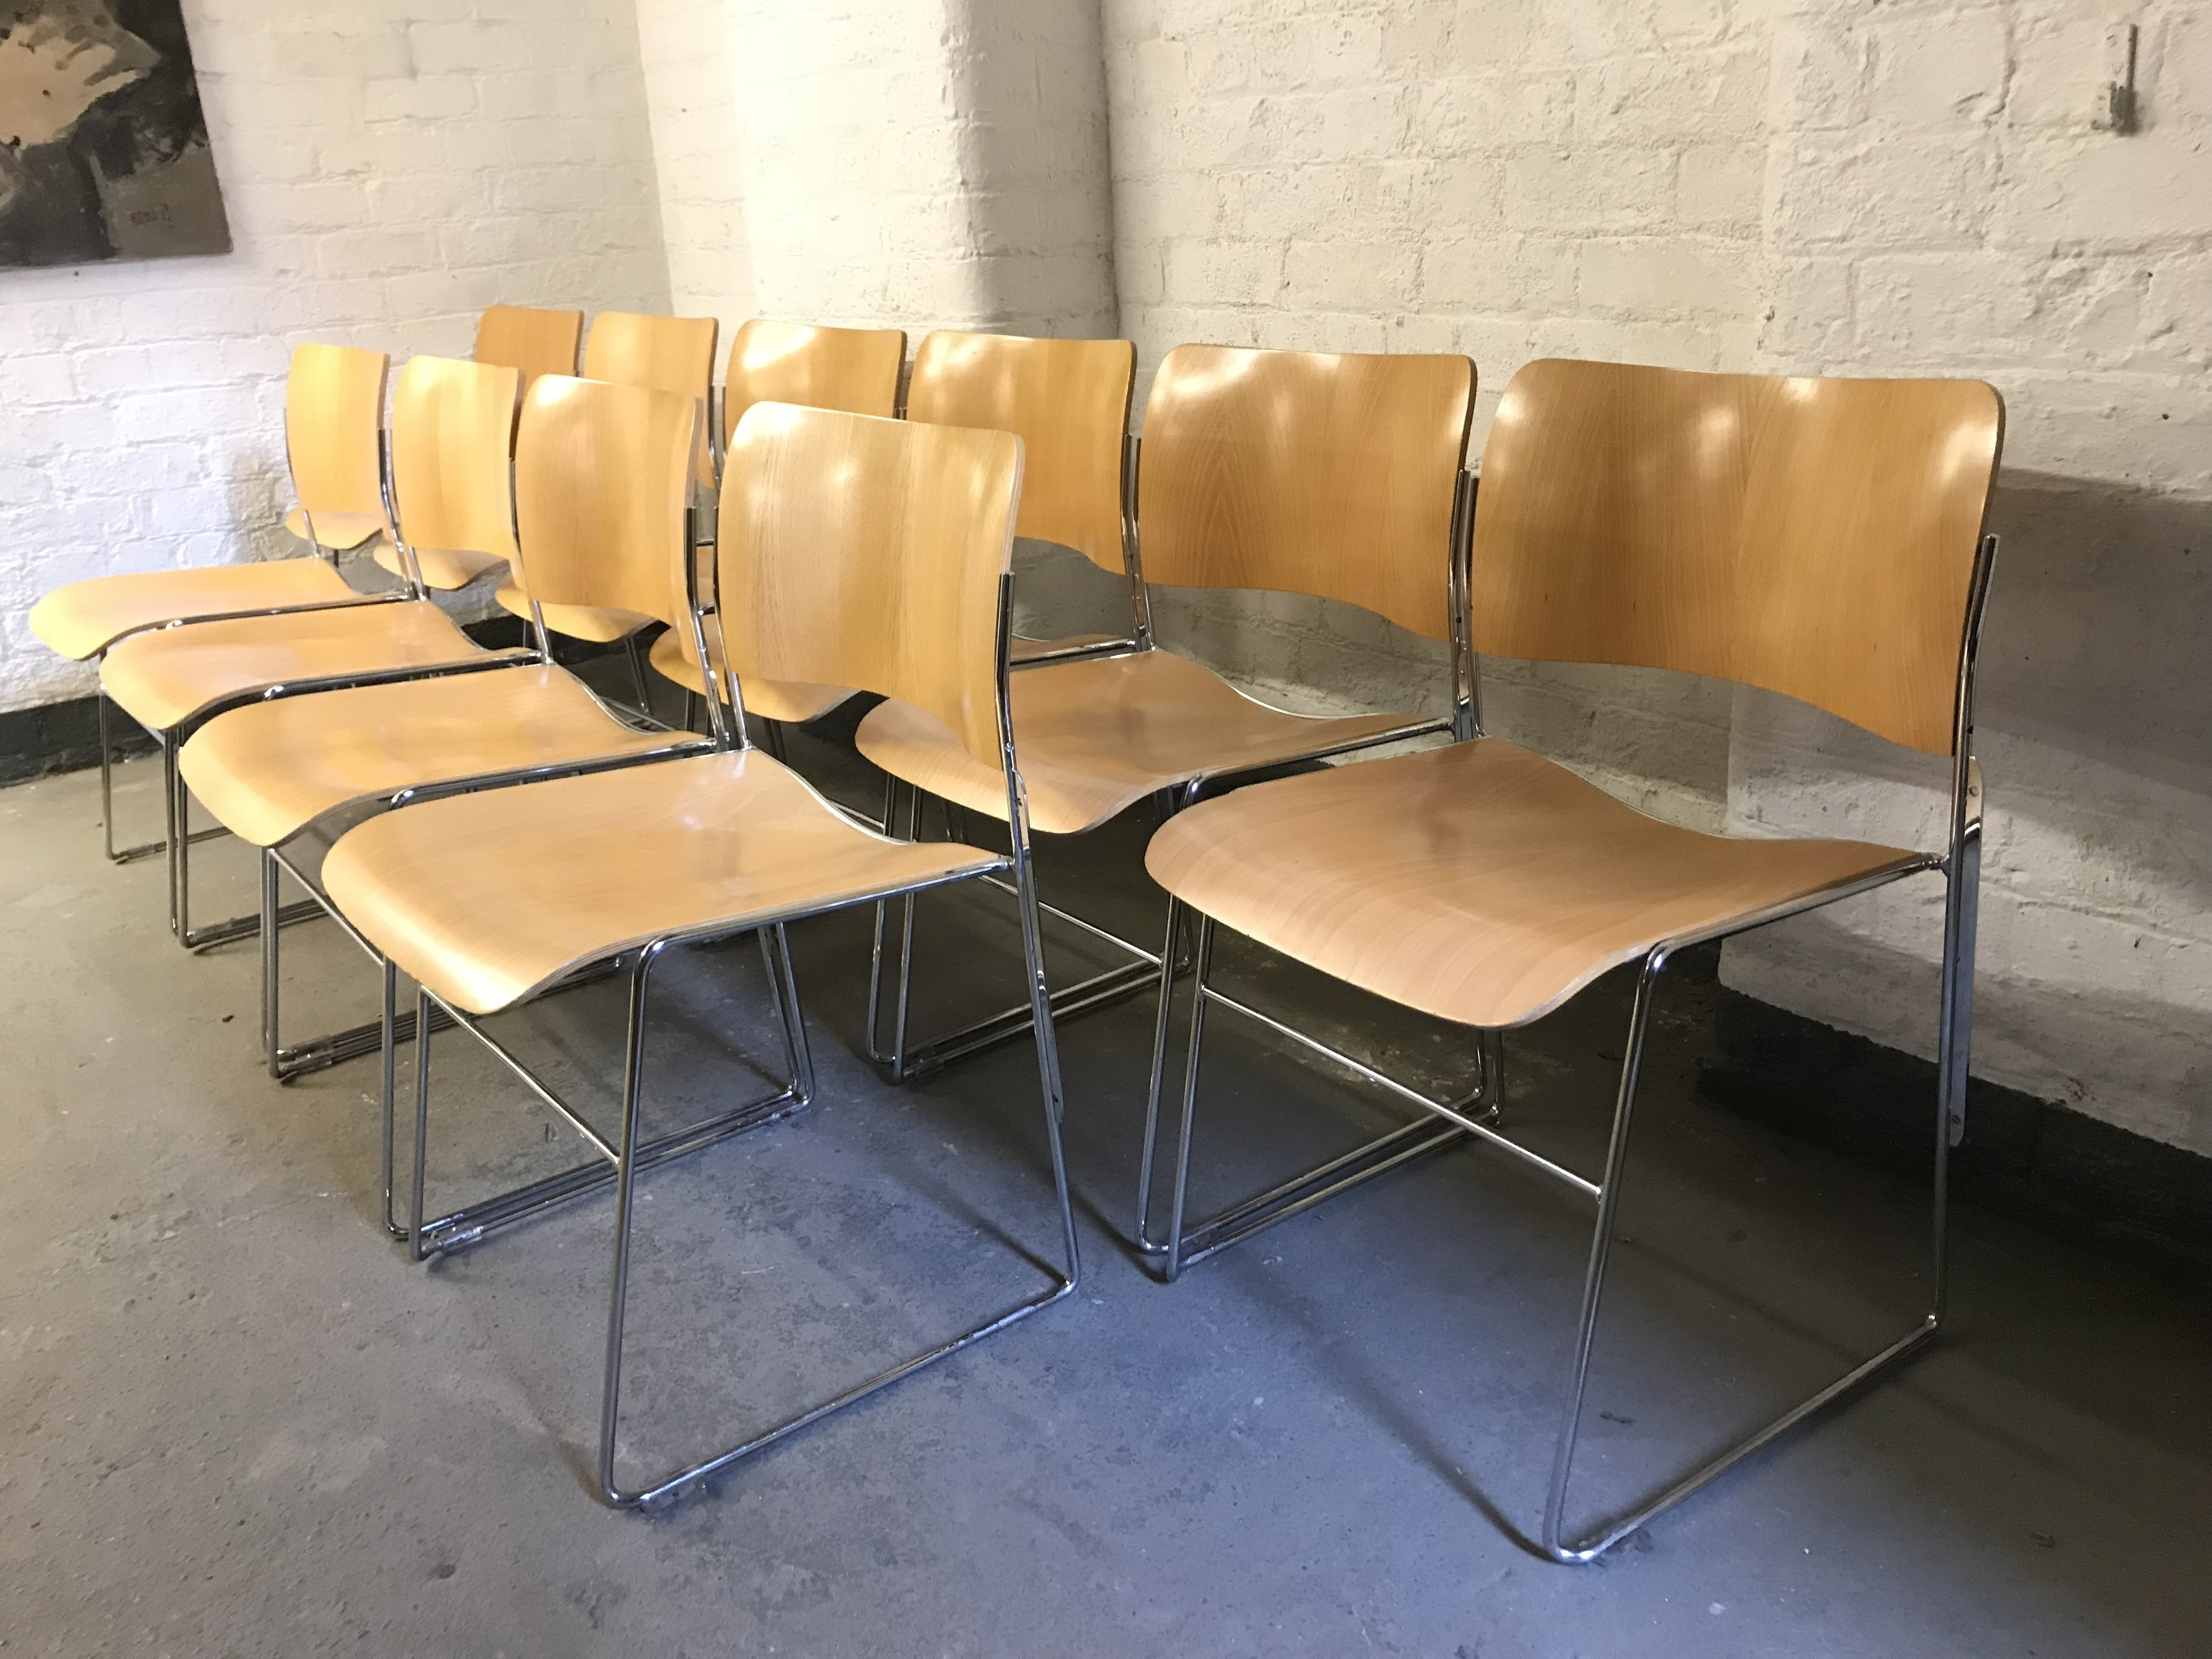 40 4 Stacking Chairs By Seid International For David Rowland 4 Available